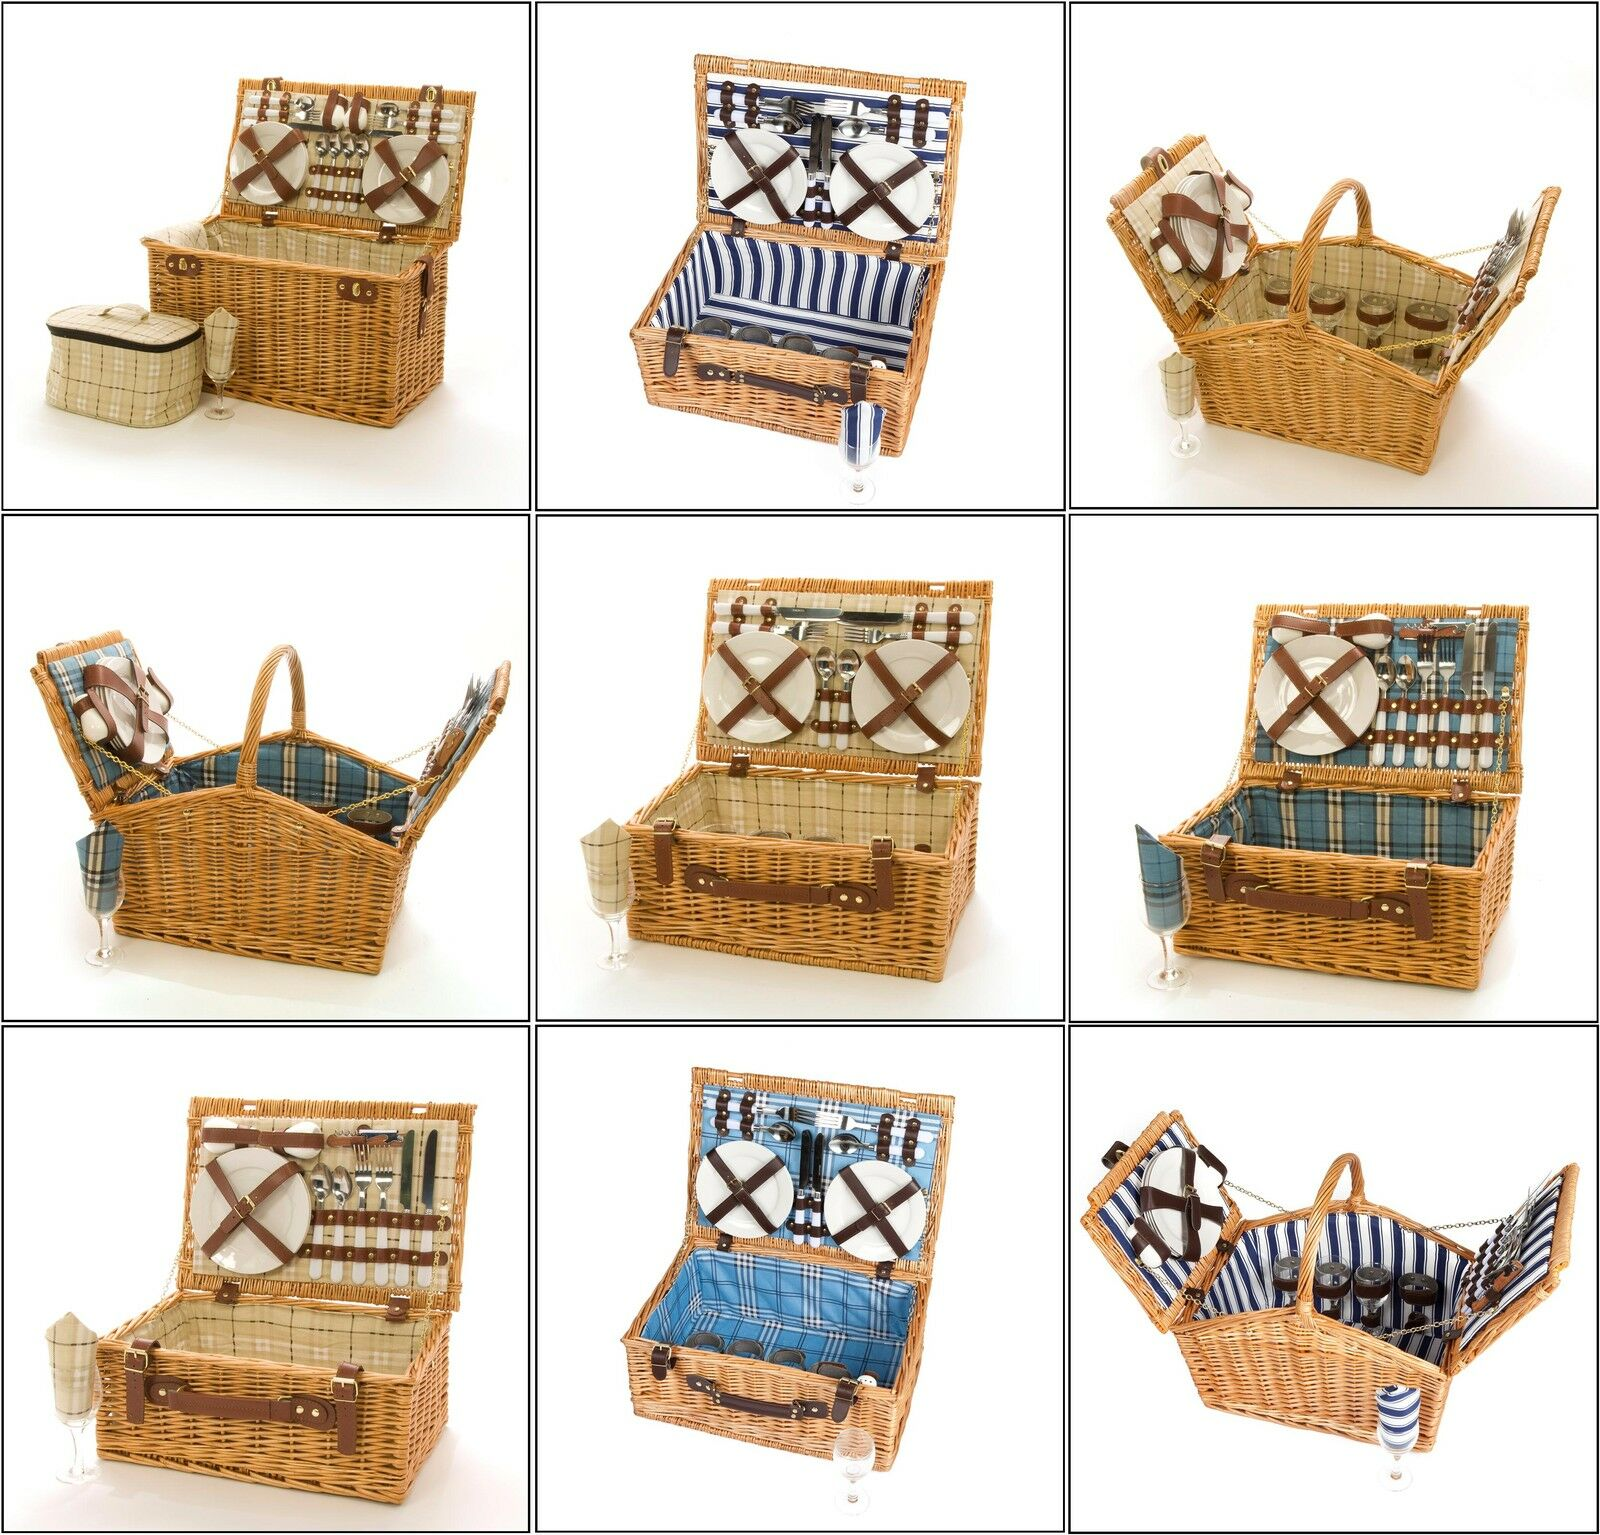 Wicker Picnic Hamper Basket 6, 4 And 2 Person Factory Seconds Picnic Basket